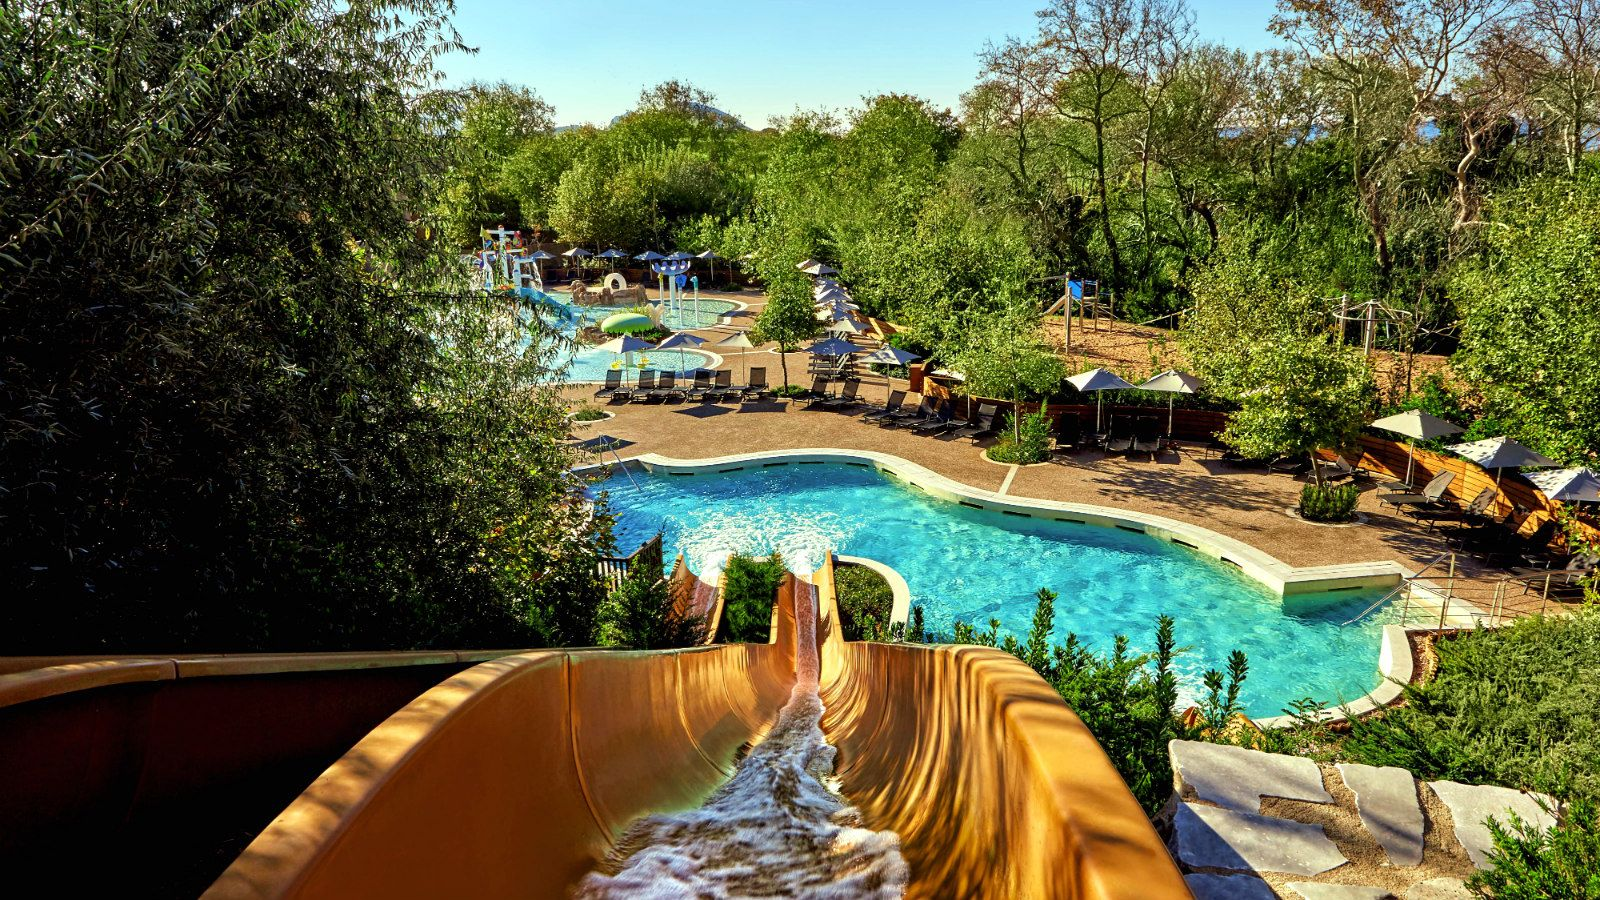 The Westin Resort Costa Navarino Griechenland Kinderhort Aquapark-Wasserrutschen